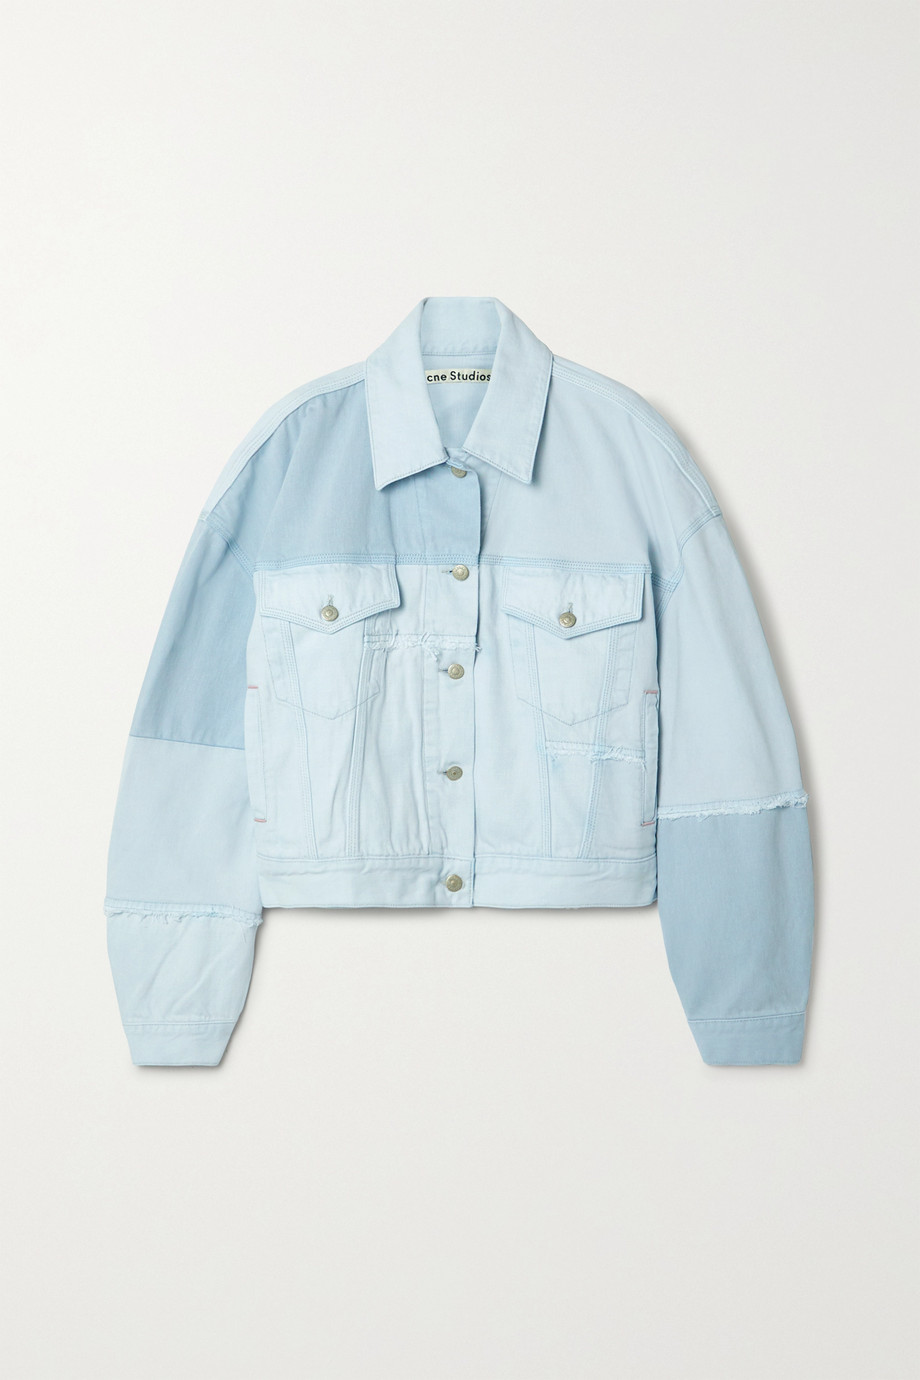 Acne Studios + NET SUSTAIN oversized frayed patchwork organic denim jacket